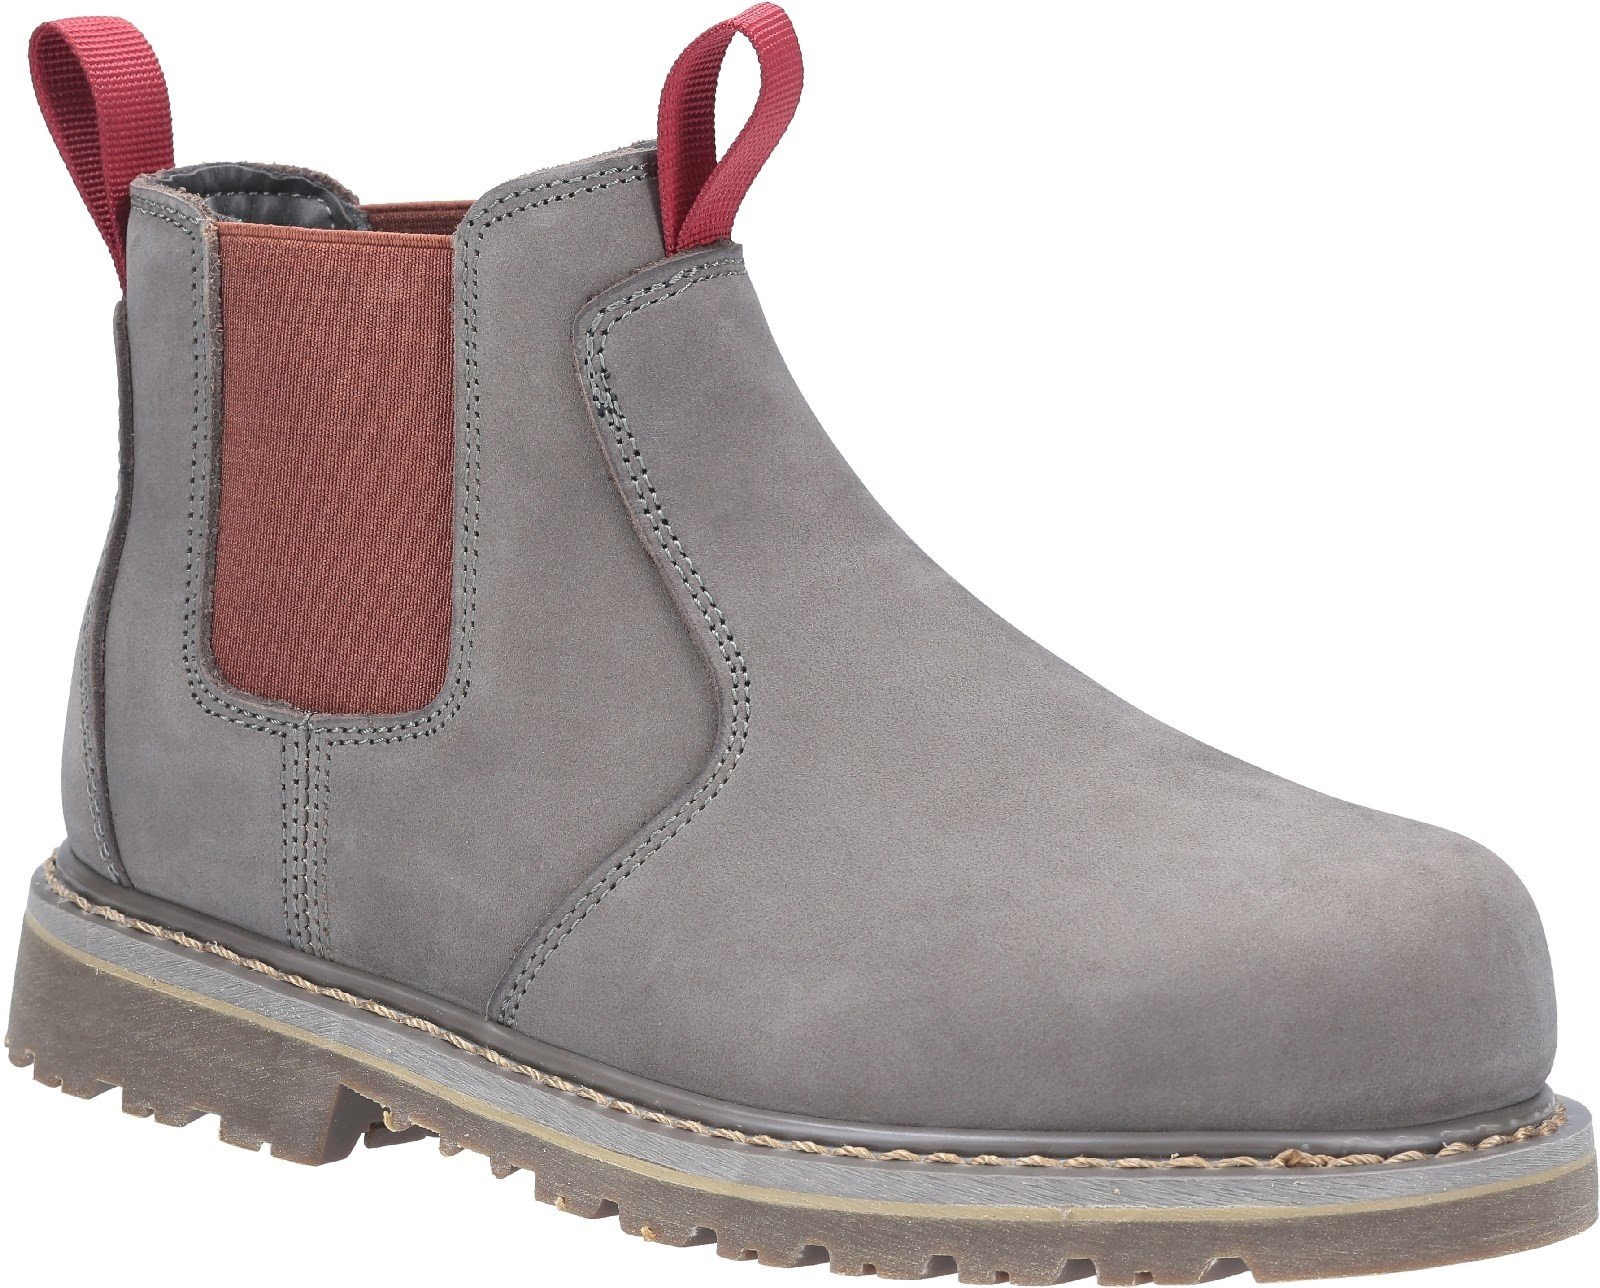 Amblers Women's Safety Sarah Slip On Safety Boot Brown 29963 - Grey 3